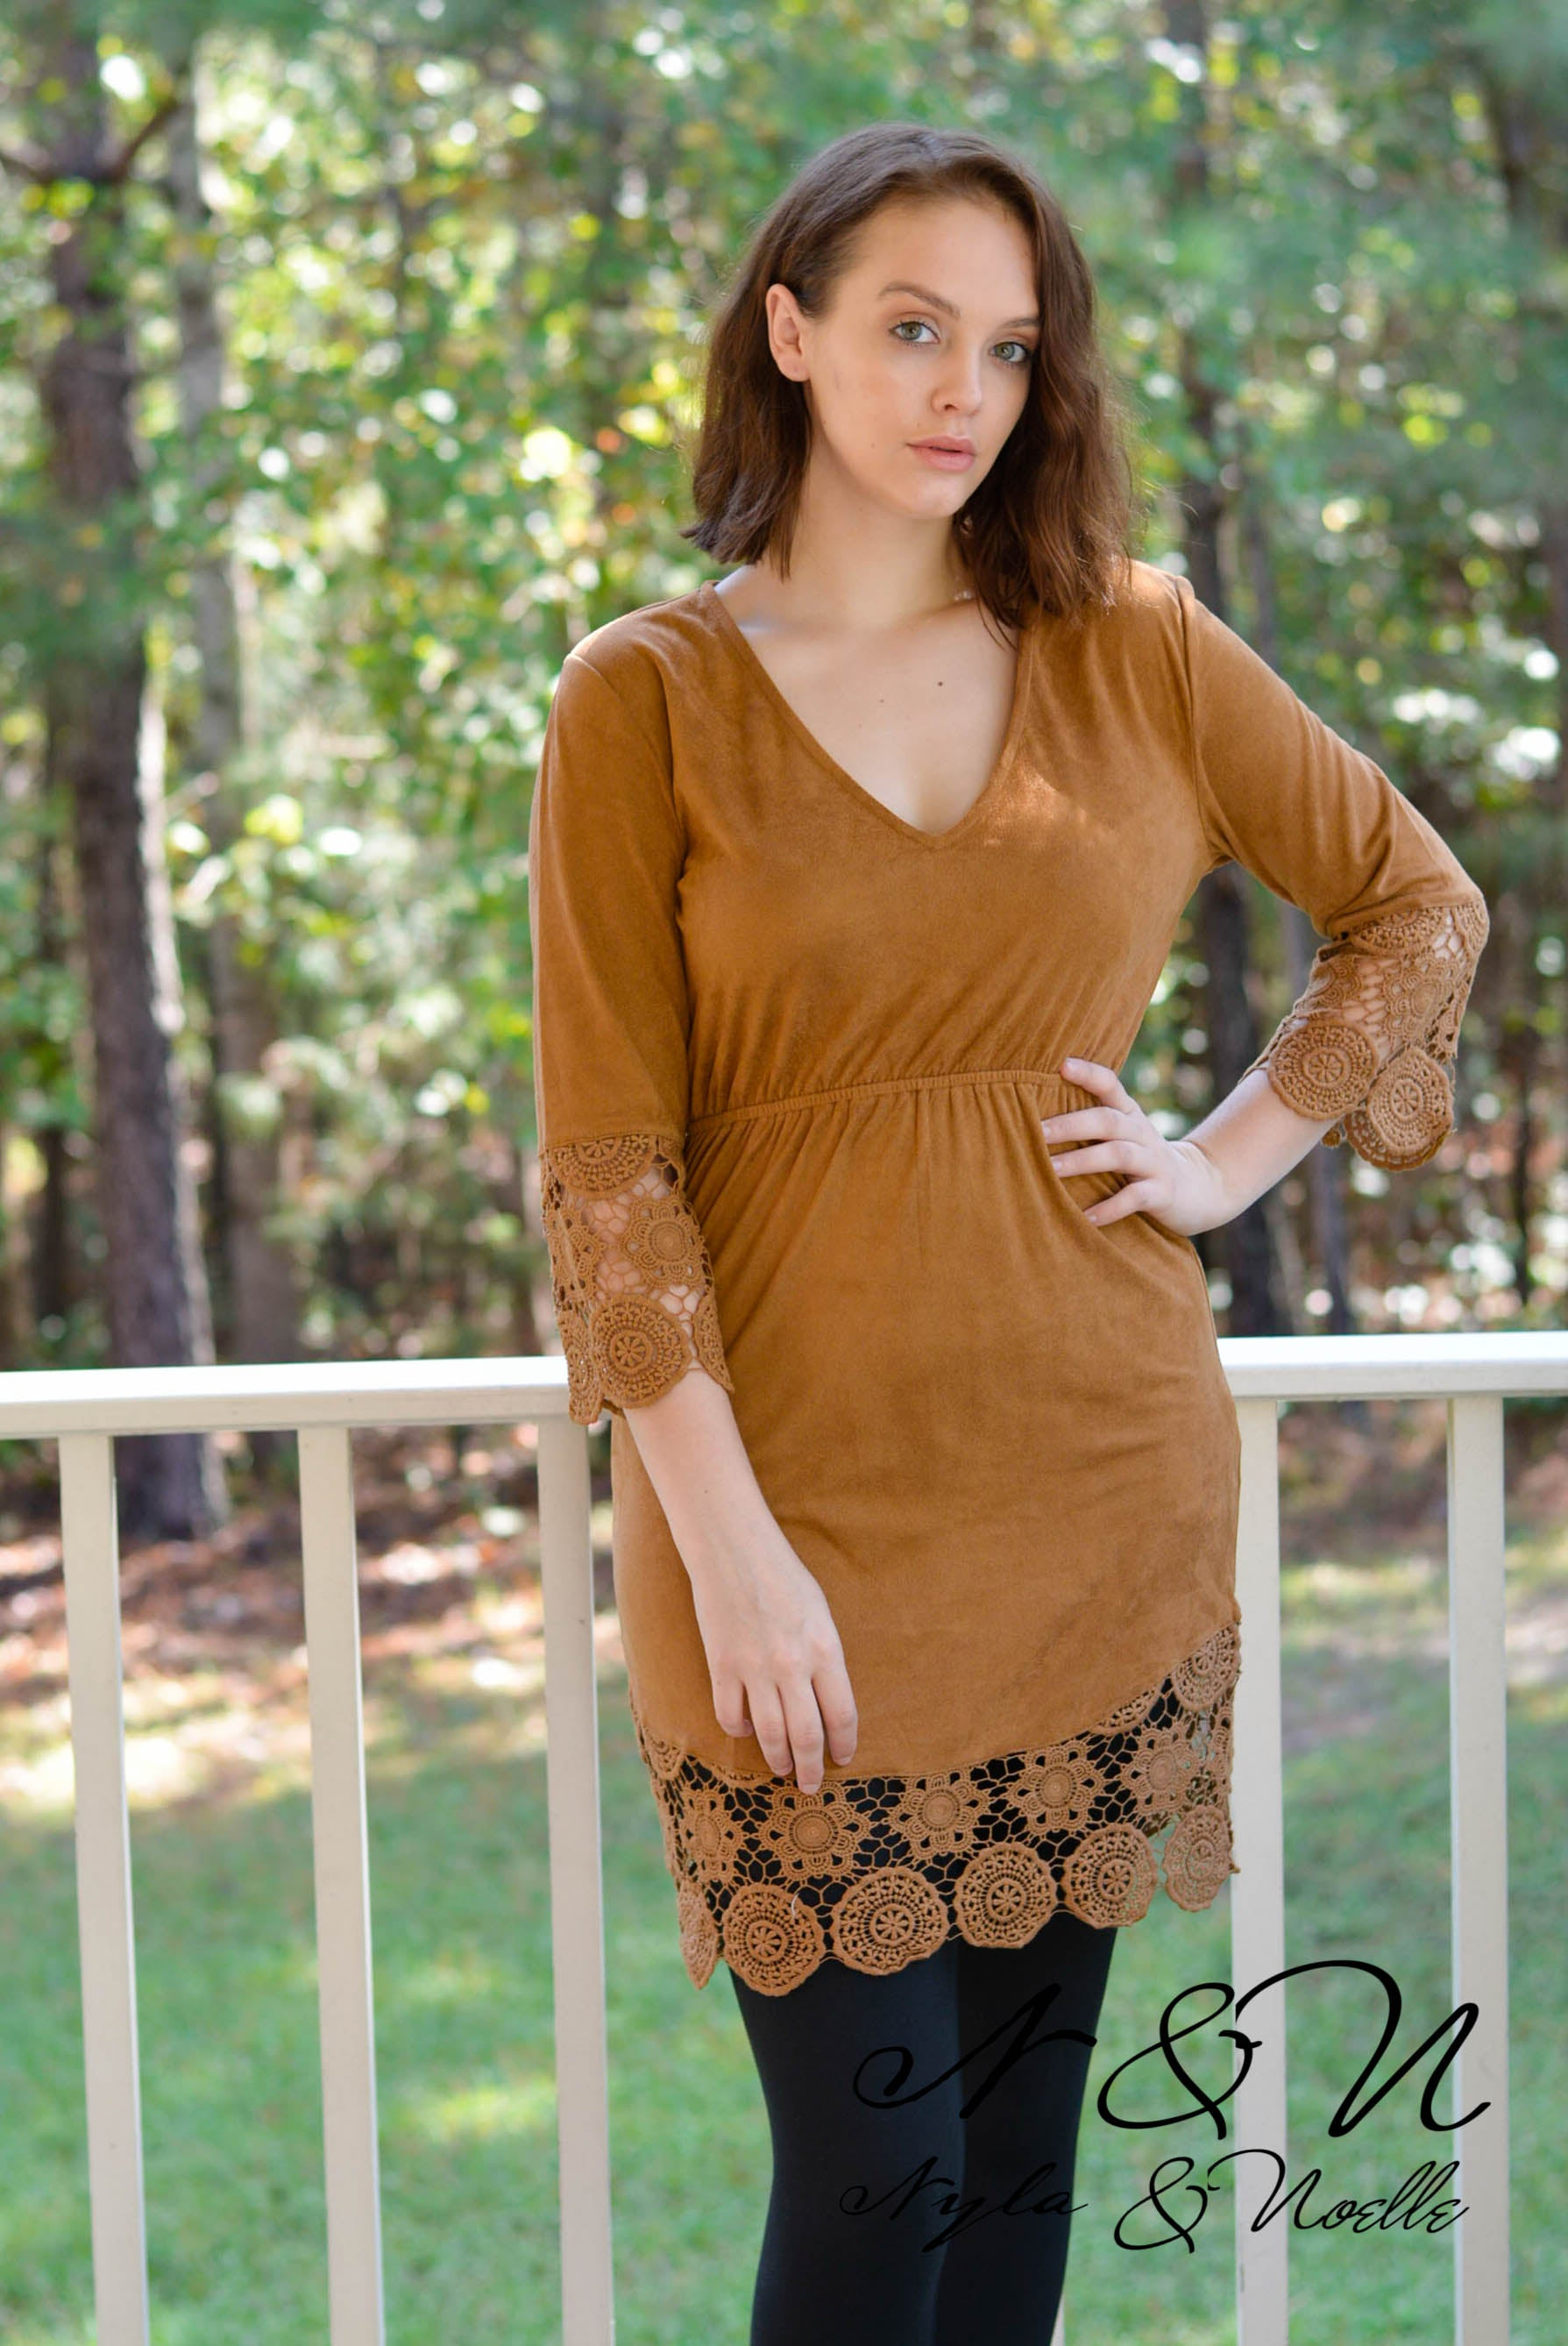 CHARLY - Micro-Suede Long Tunic or Leggings Dress with Crochet Lace Accents